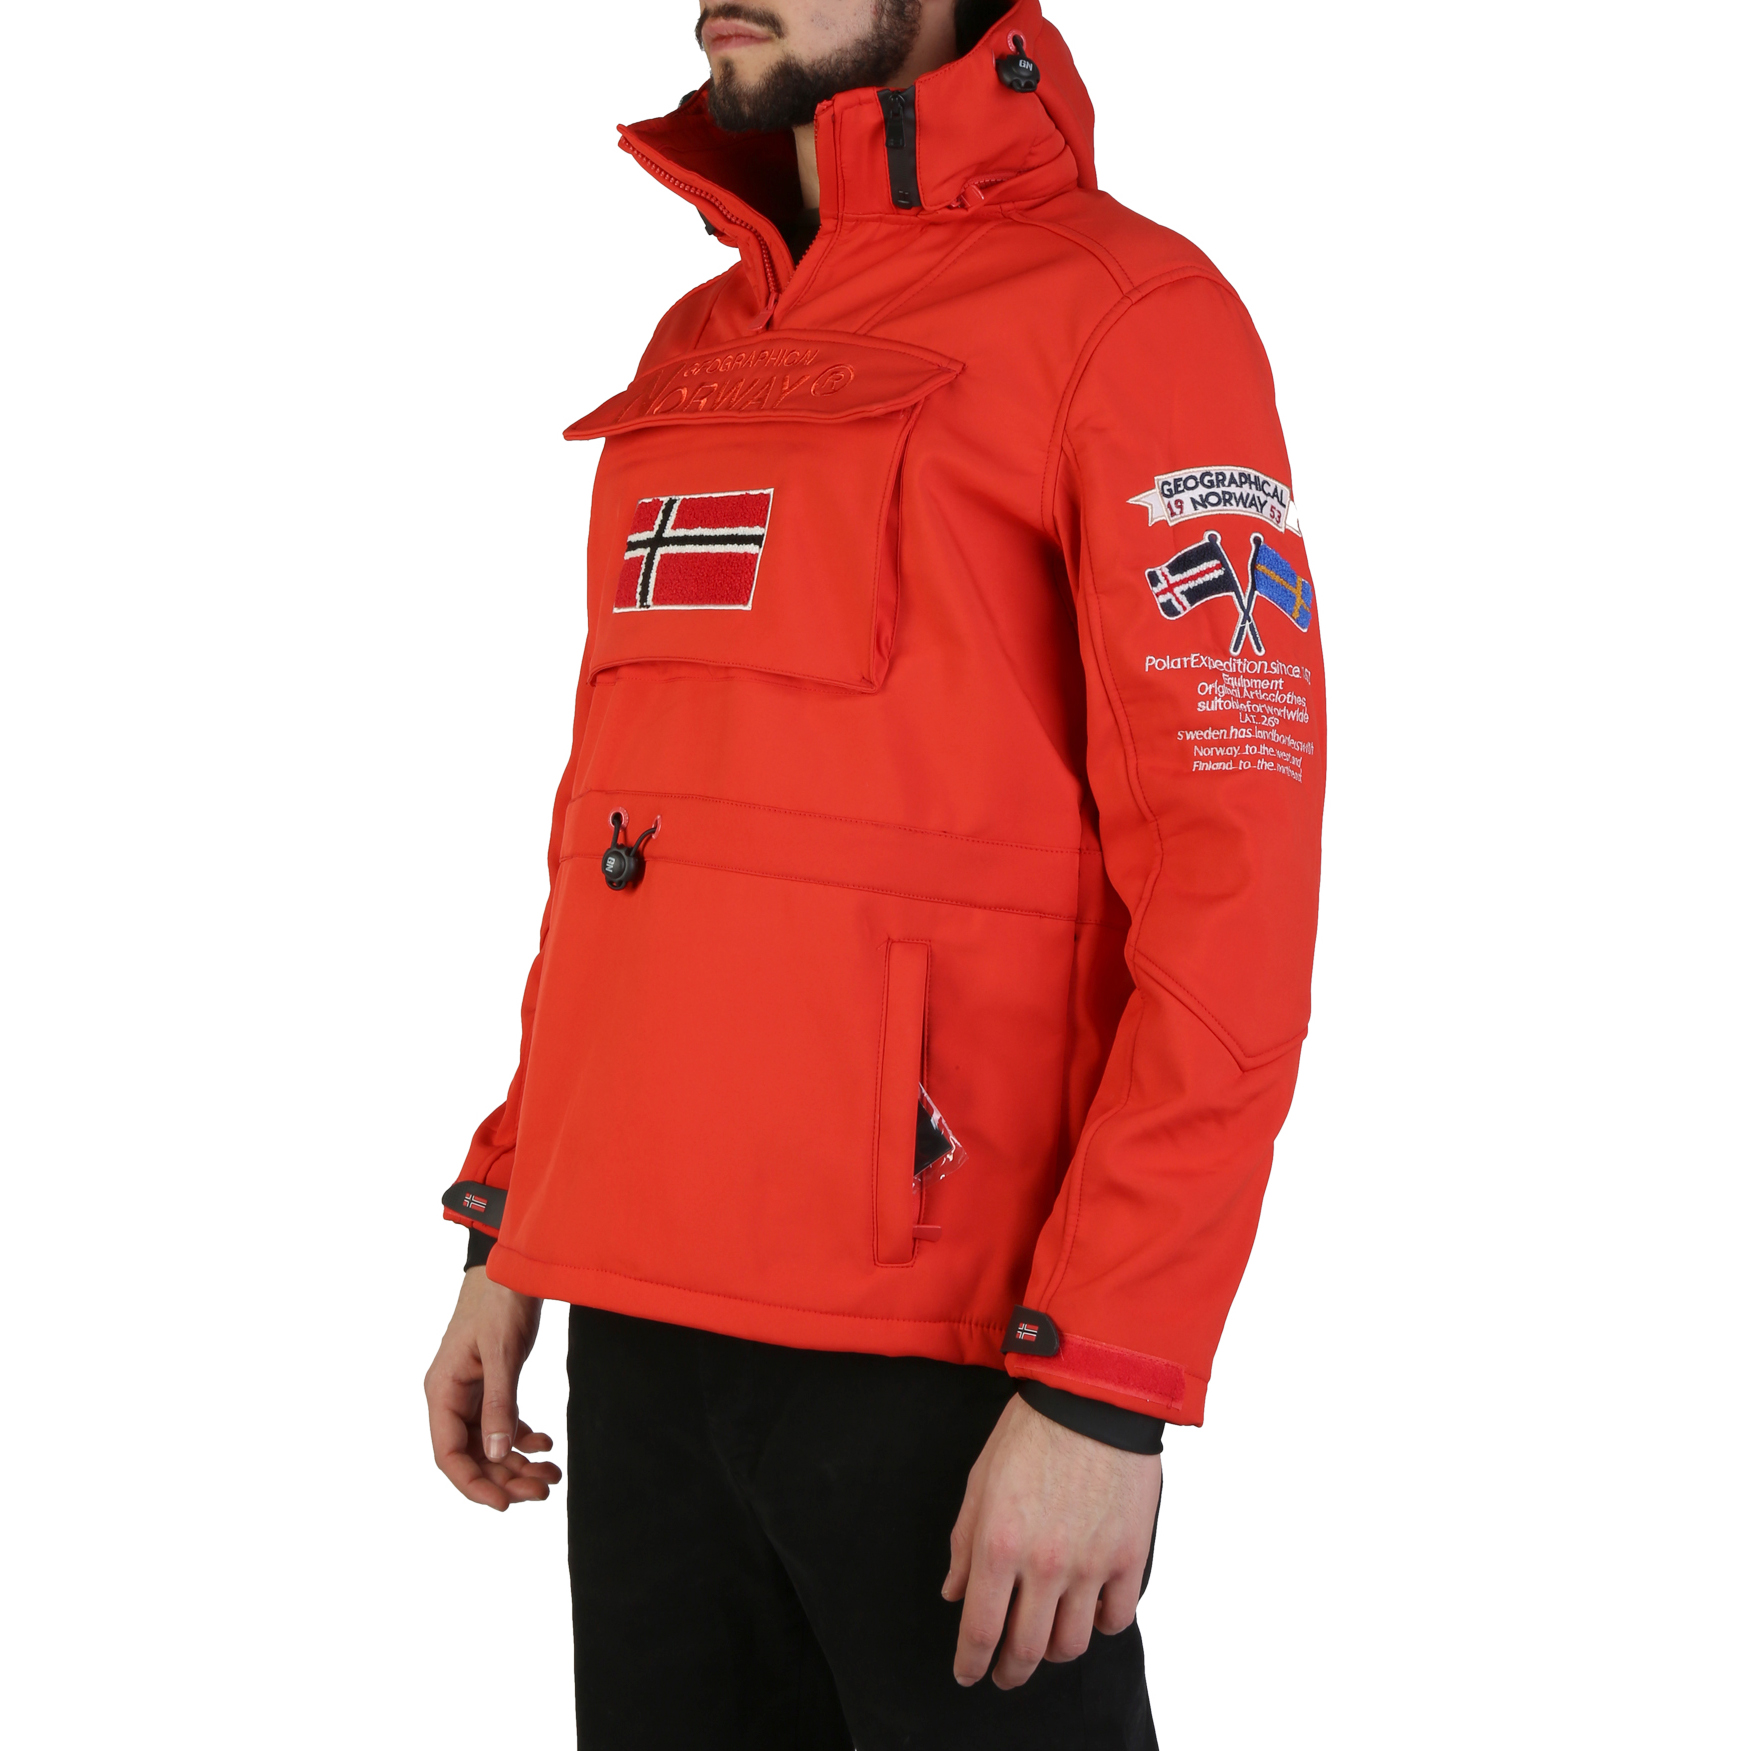 Vestes & blousons  Geographical norway Target_man red